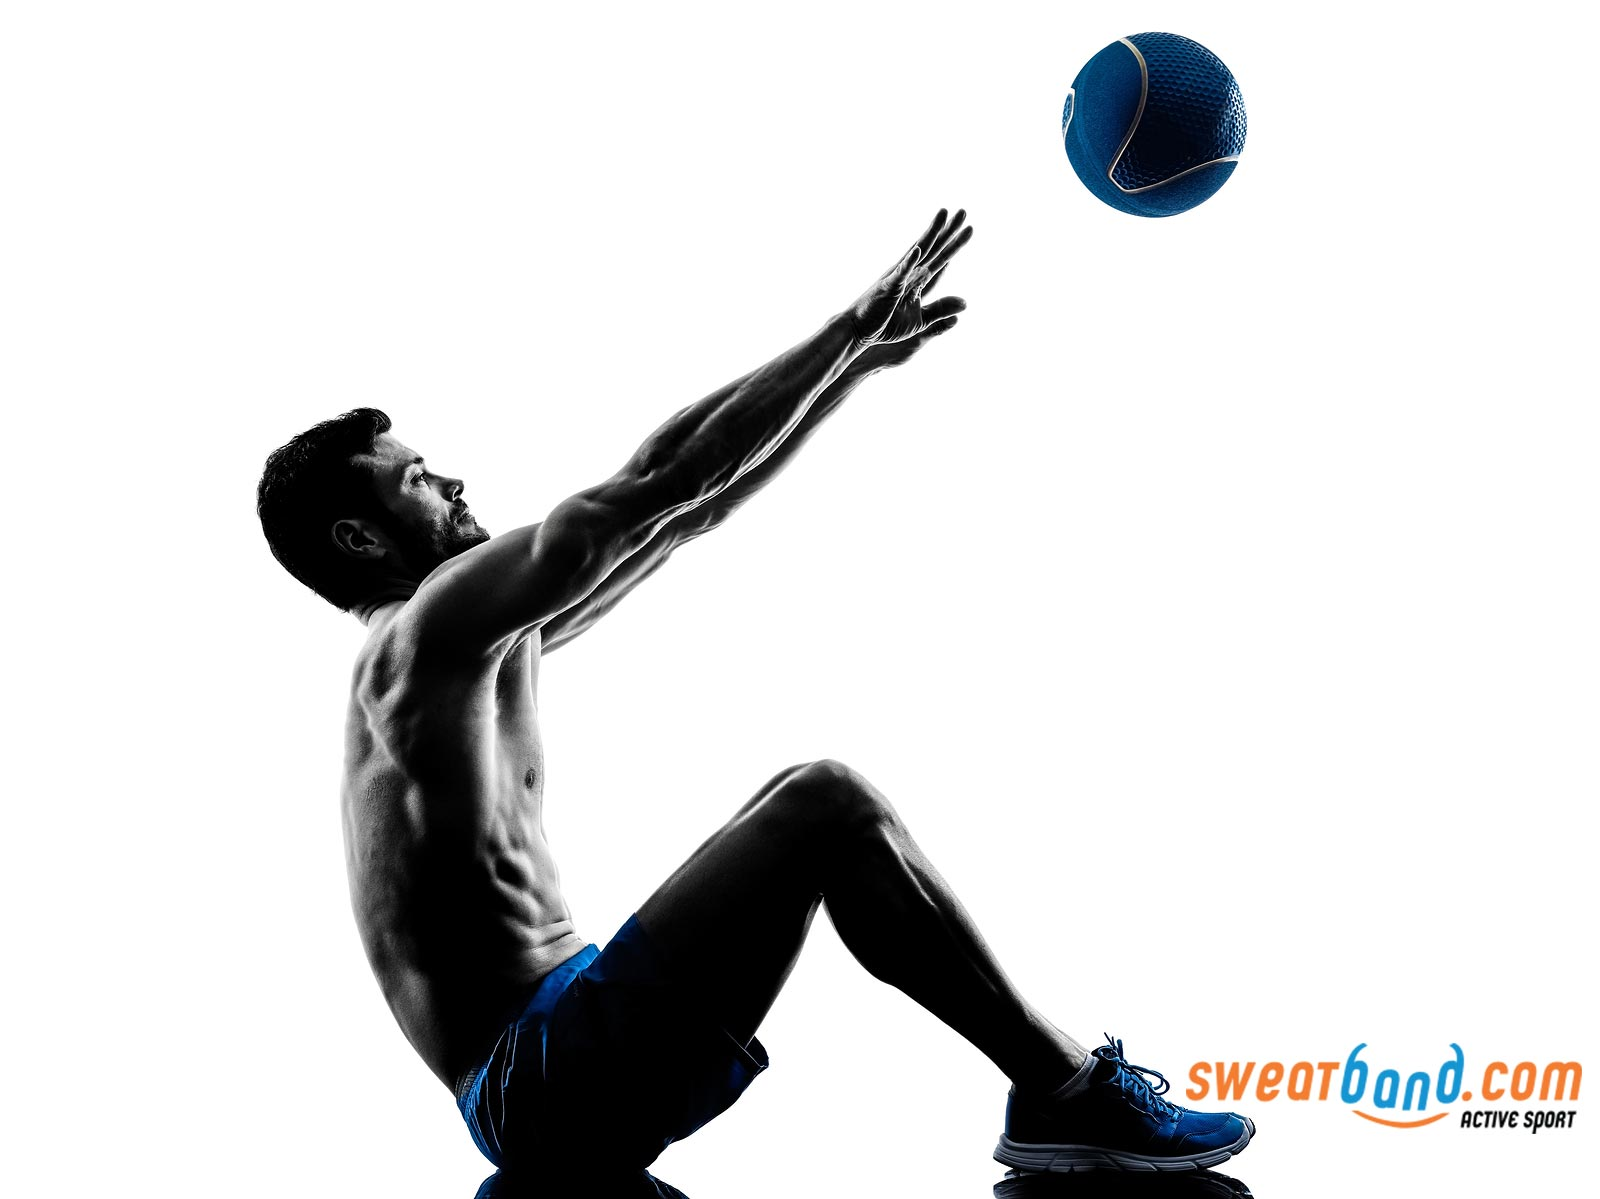 Grab a medicine ball and get throwing it to increase your strength